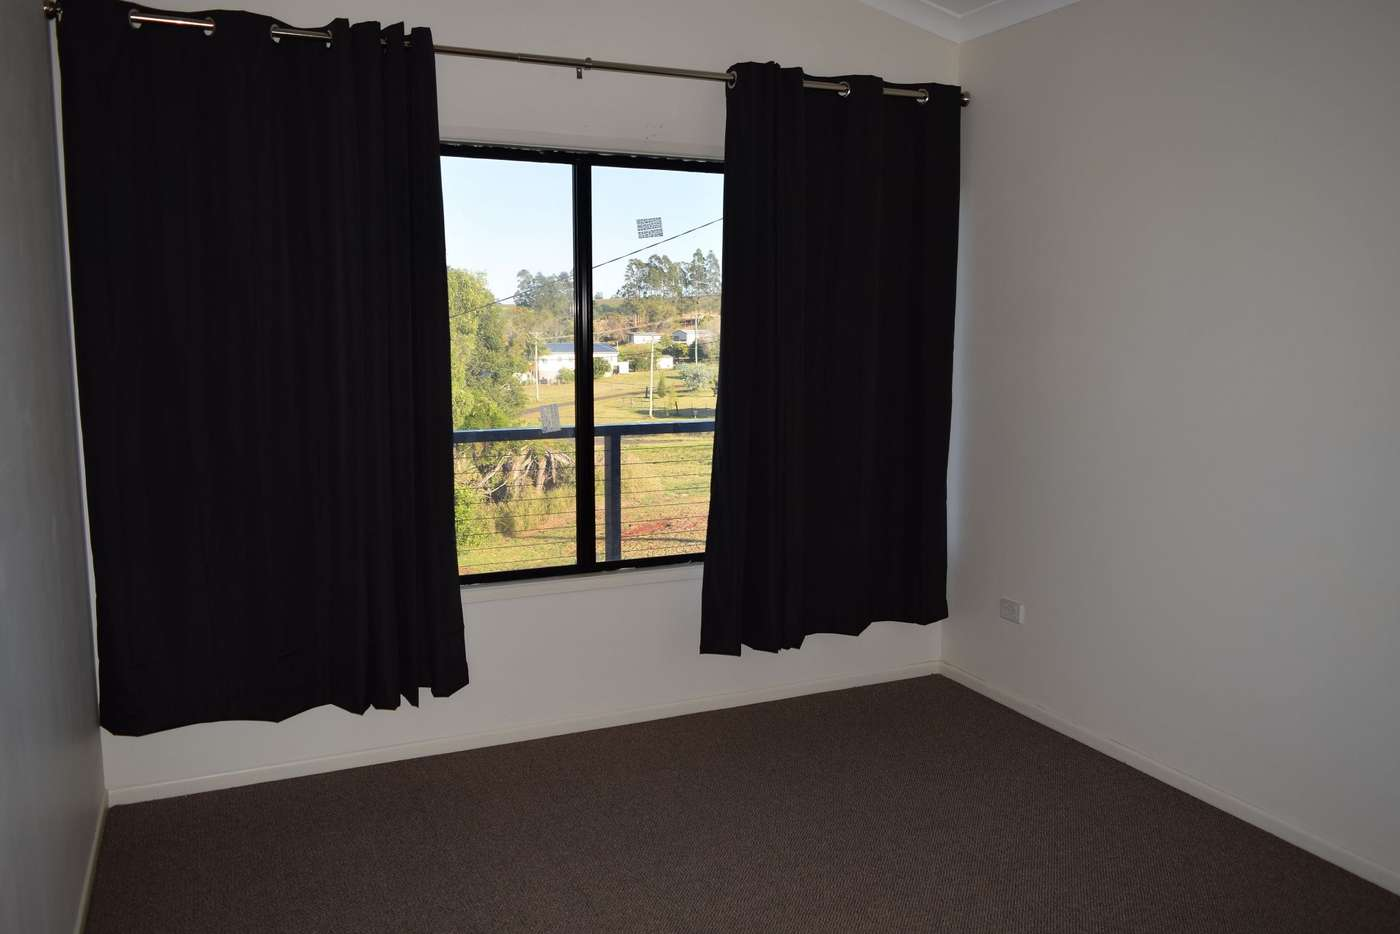 Seventh view of Homely house listing, 23 Home Street, Tingoora QLD 4608